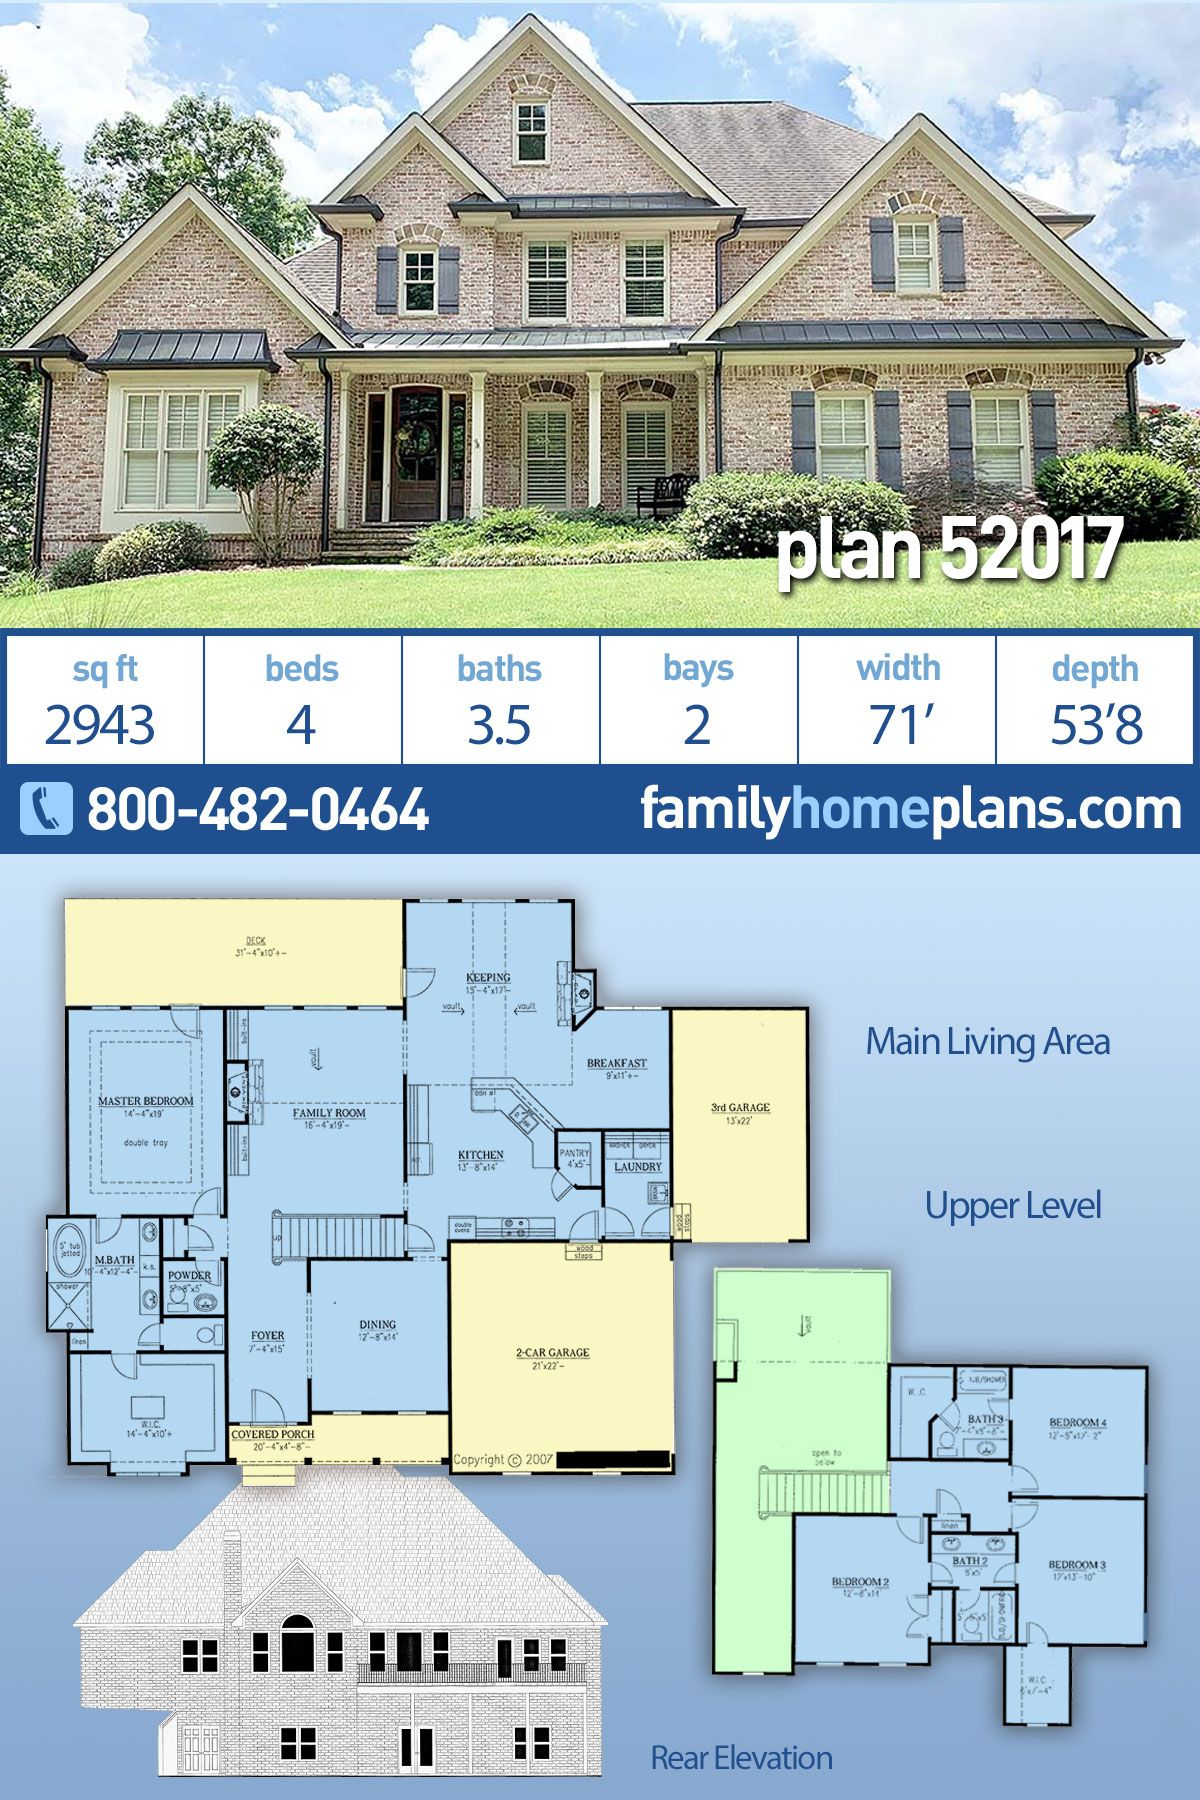 Traditional Style House Plan 52017 With 4 Bed 4 Bath 2 Car Garage Family House Plans Brick House Plans House Plans One Story